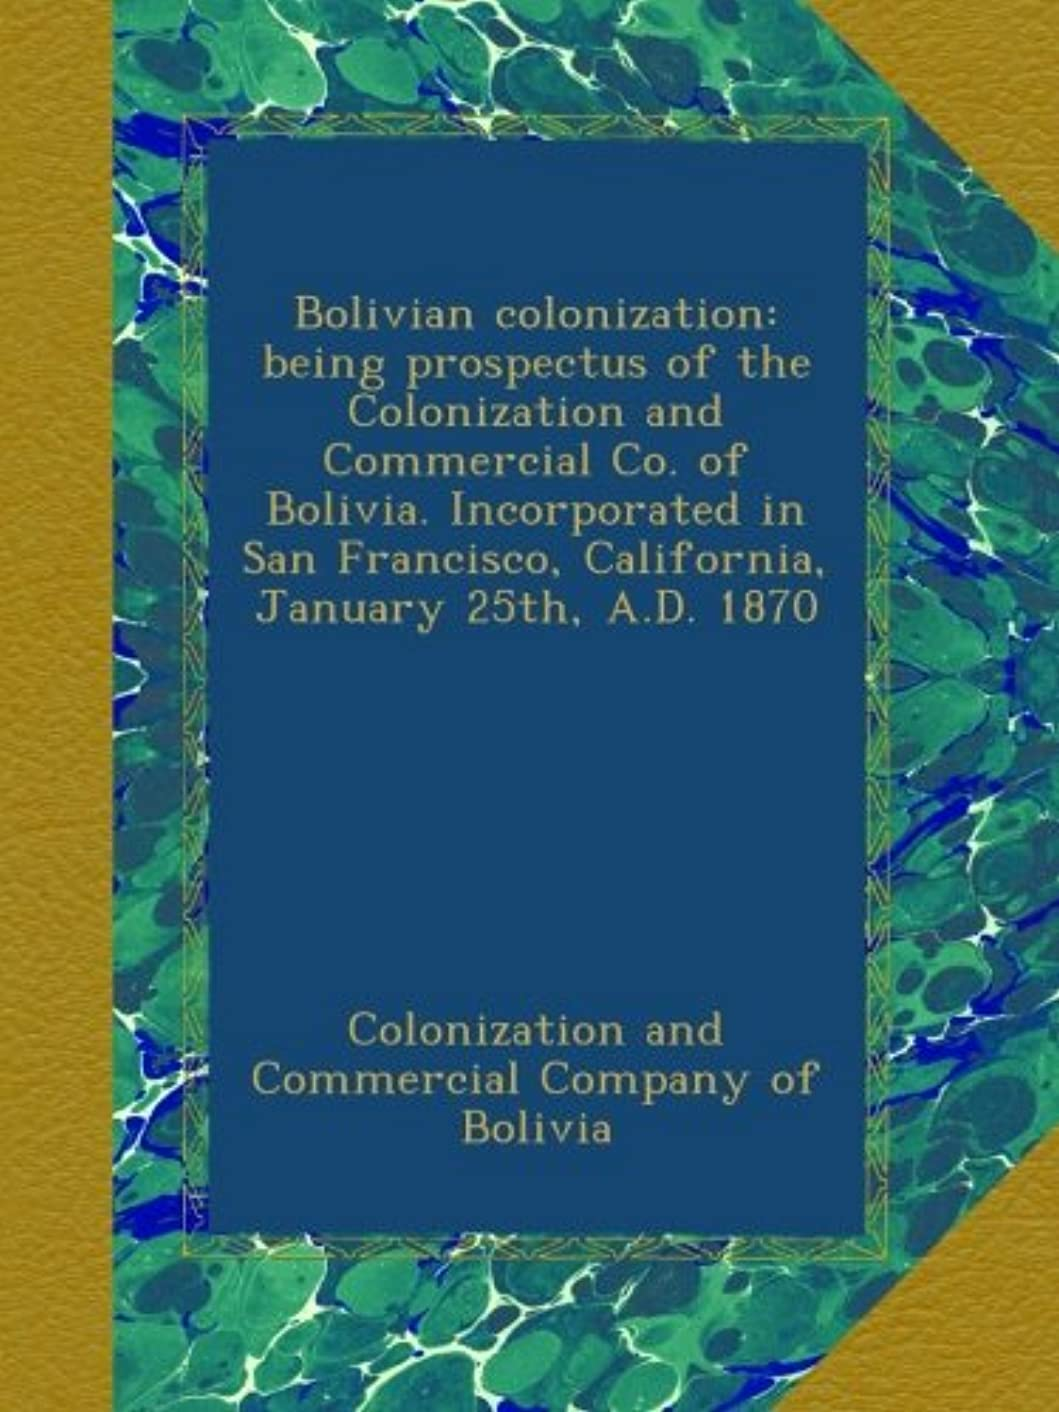 Bolivian colonization: being prospectus of the Colonization and Commercial Co. of Bolivia. Incorporated in San Francisco, California, January 25th, A.D. 1870